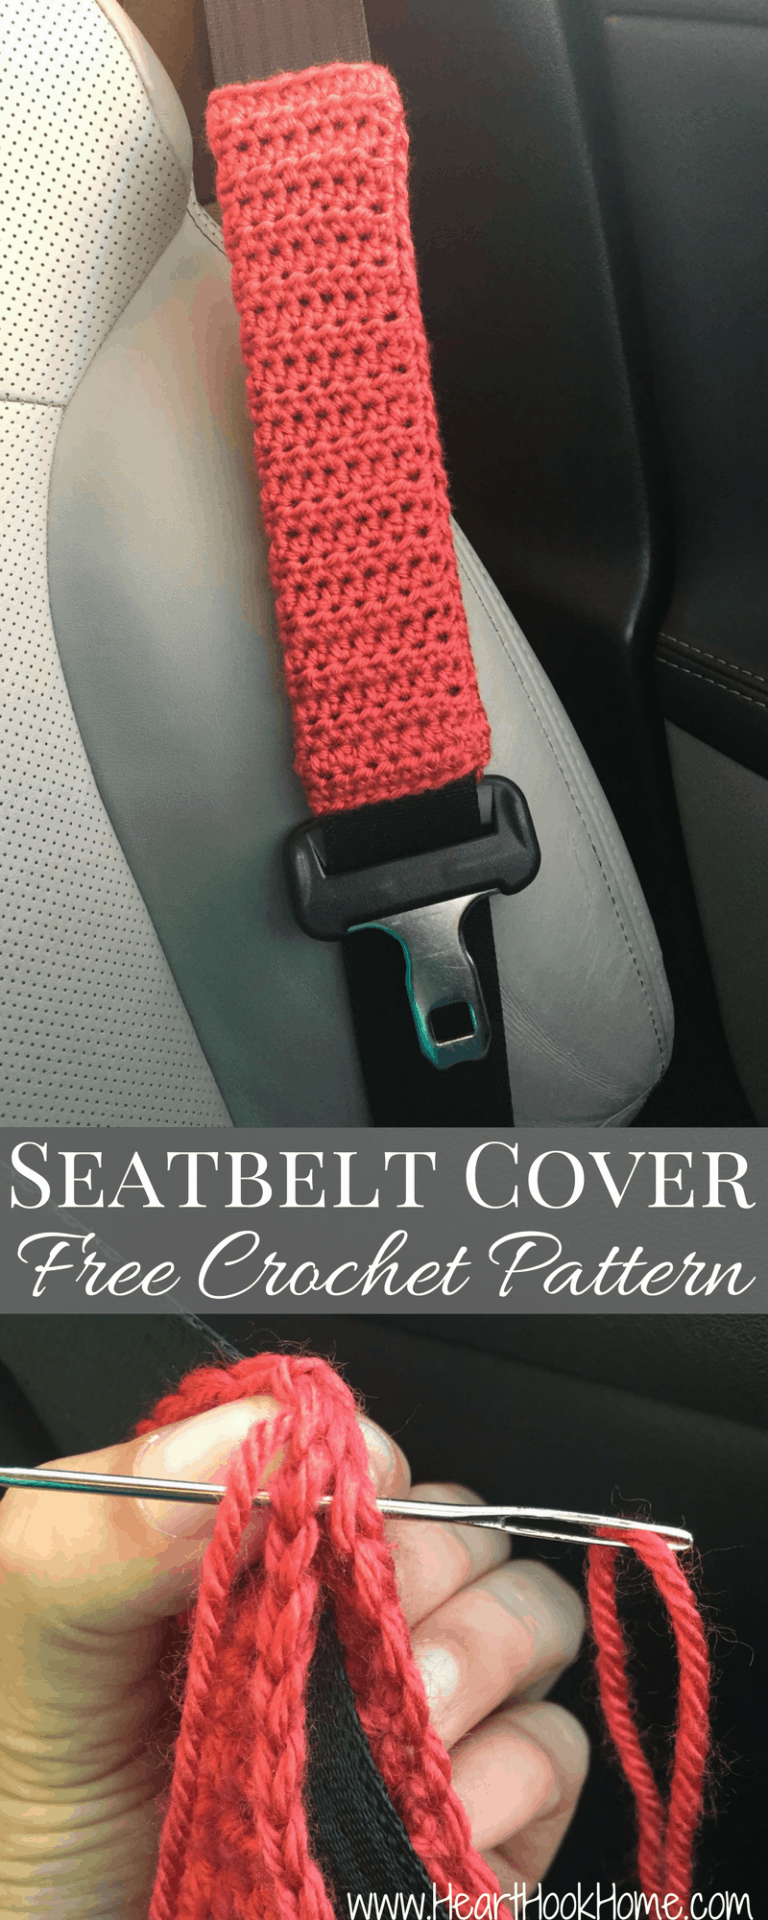 Free Crochet Seatbelt Cover Pattern